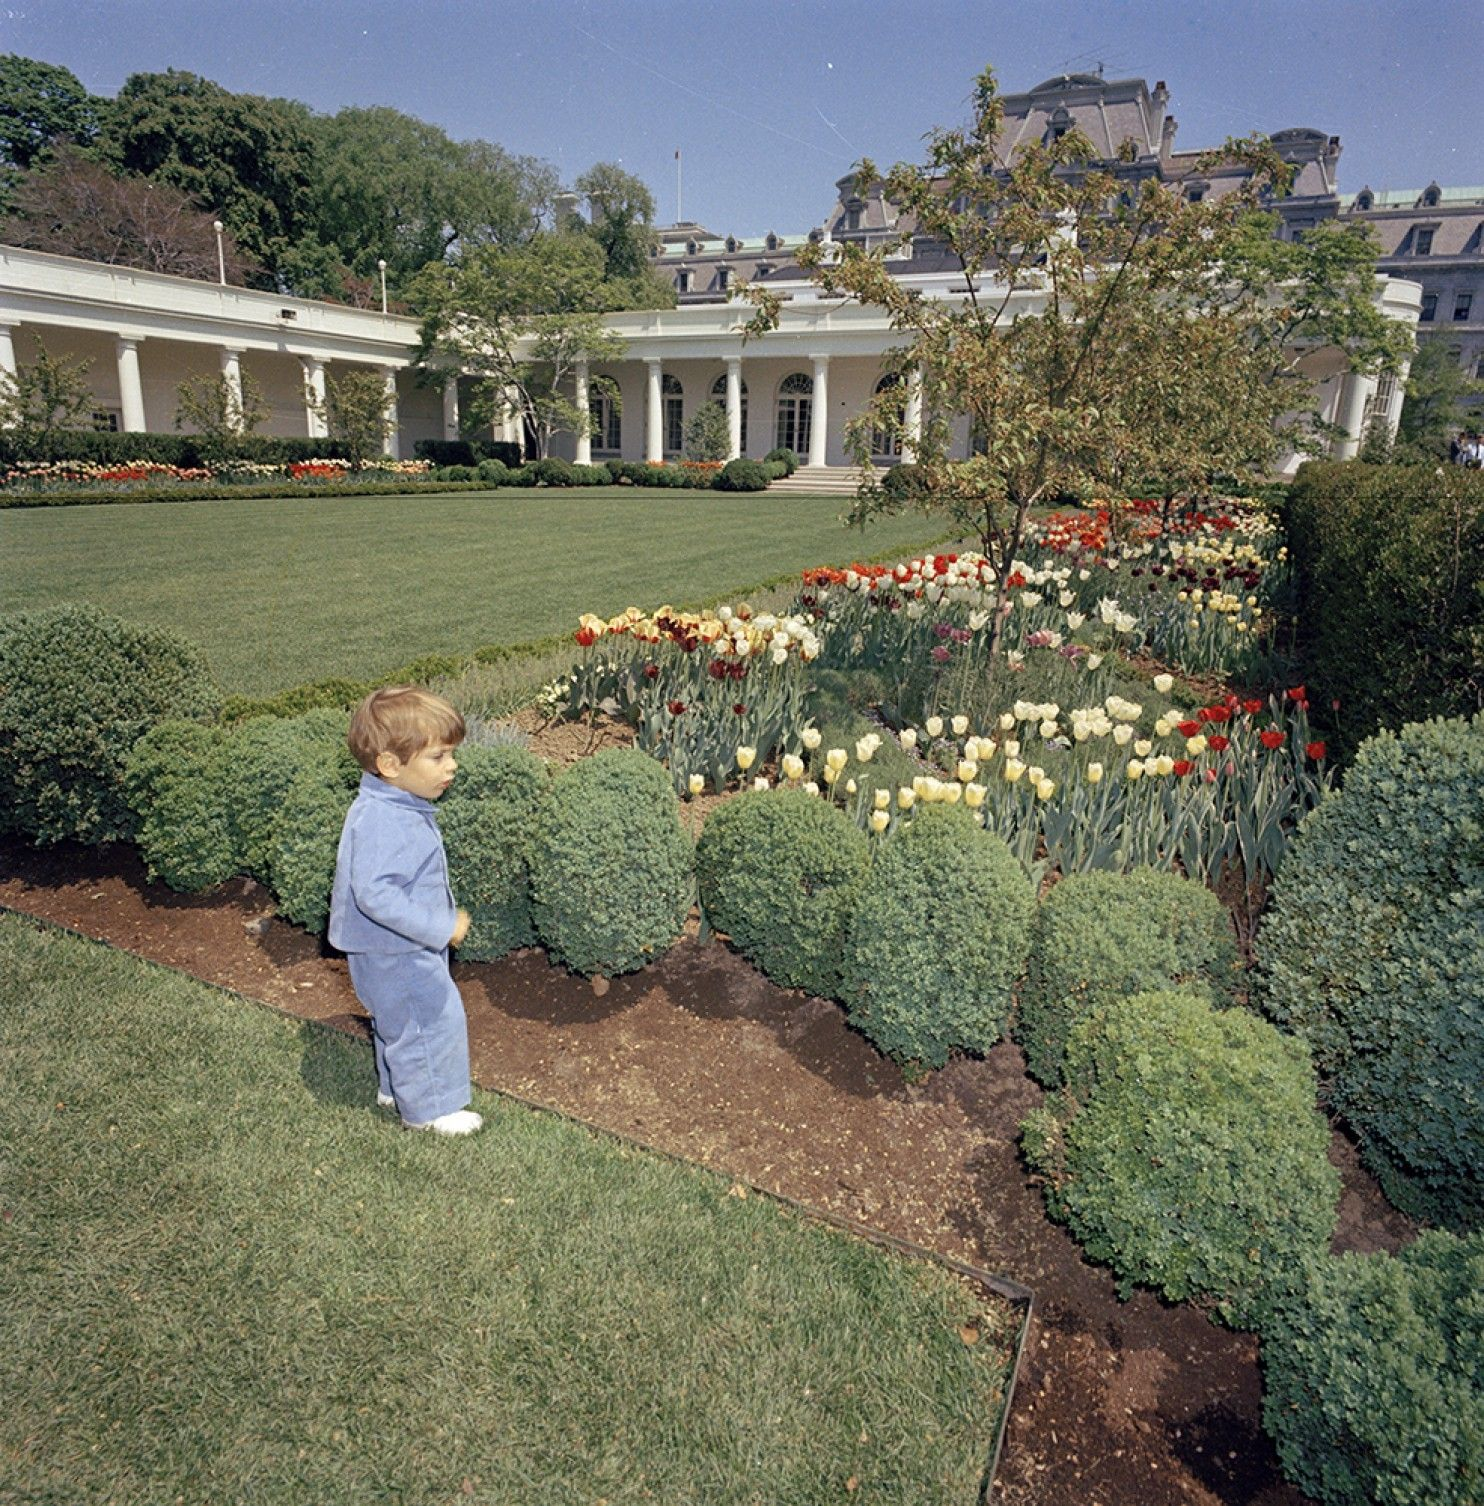 @JoJoFromJerz @brookselaine70 @BeschlossDC @marycjordan Jackie Kennedy redid the rose garden and planted the trees that were removed. I am incensed that before they are going to be leaving, Melania thought it appropriate to remove Jackie Kennedy's garden. This, of course, after removing  Michele Obama's garden. Erasing history. https://t.co/VObVnZjE2f